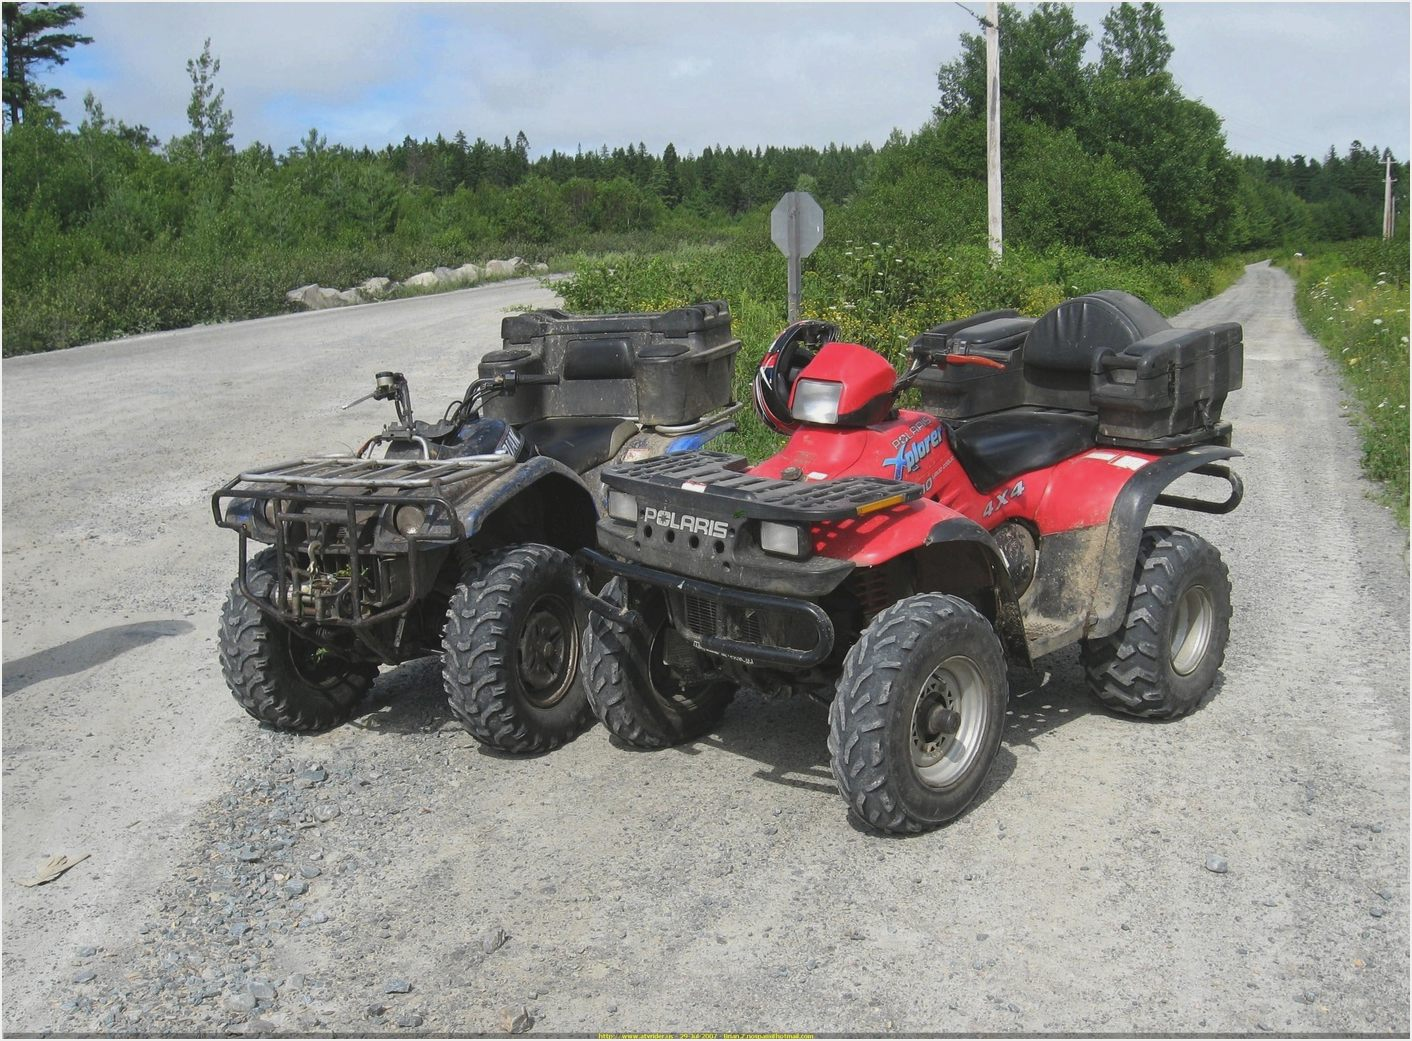 Polaris Xplorer 400 1998 images #120444